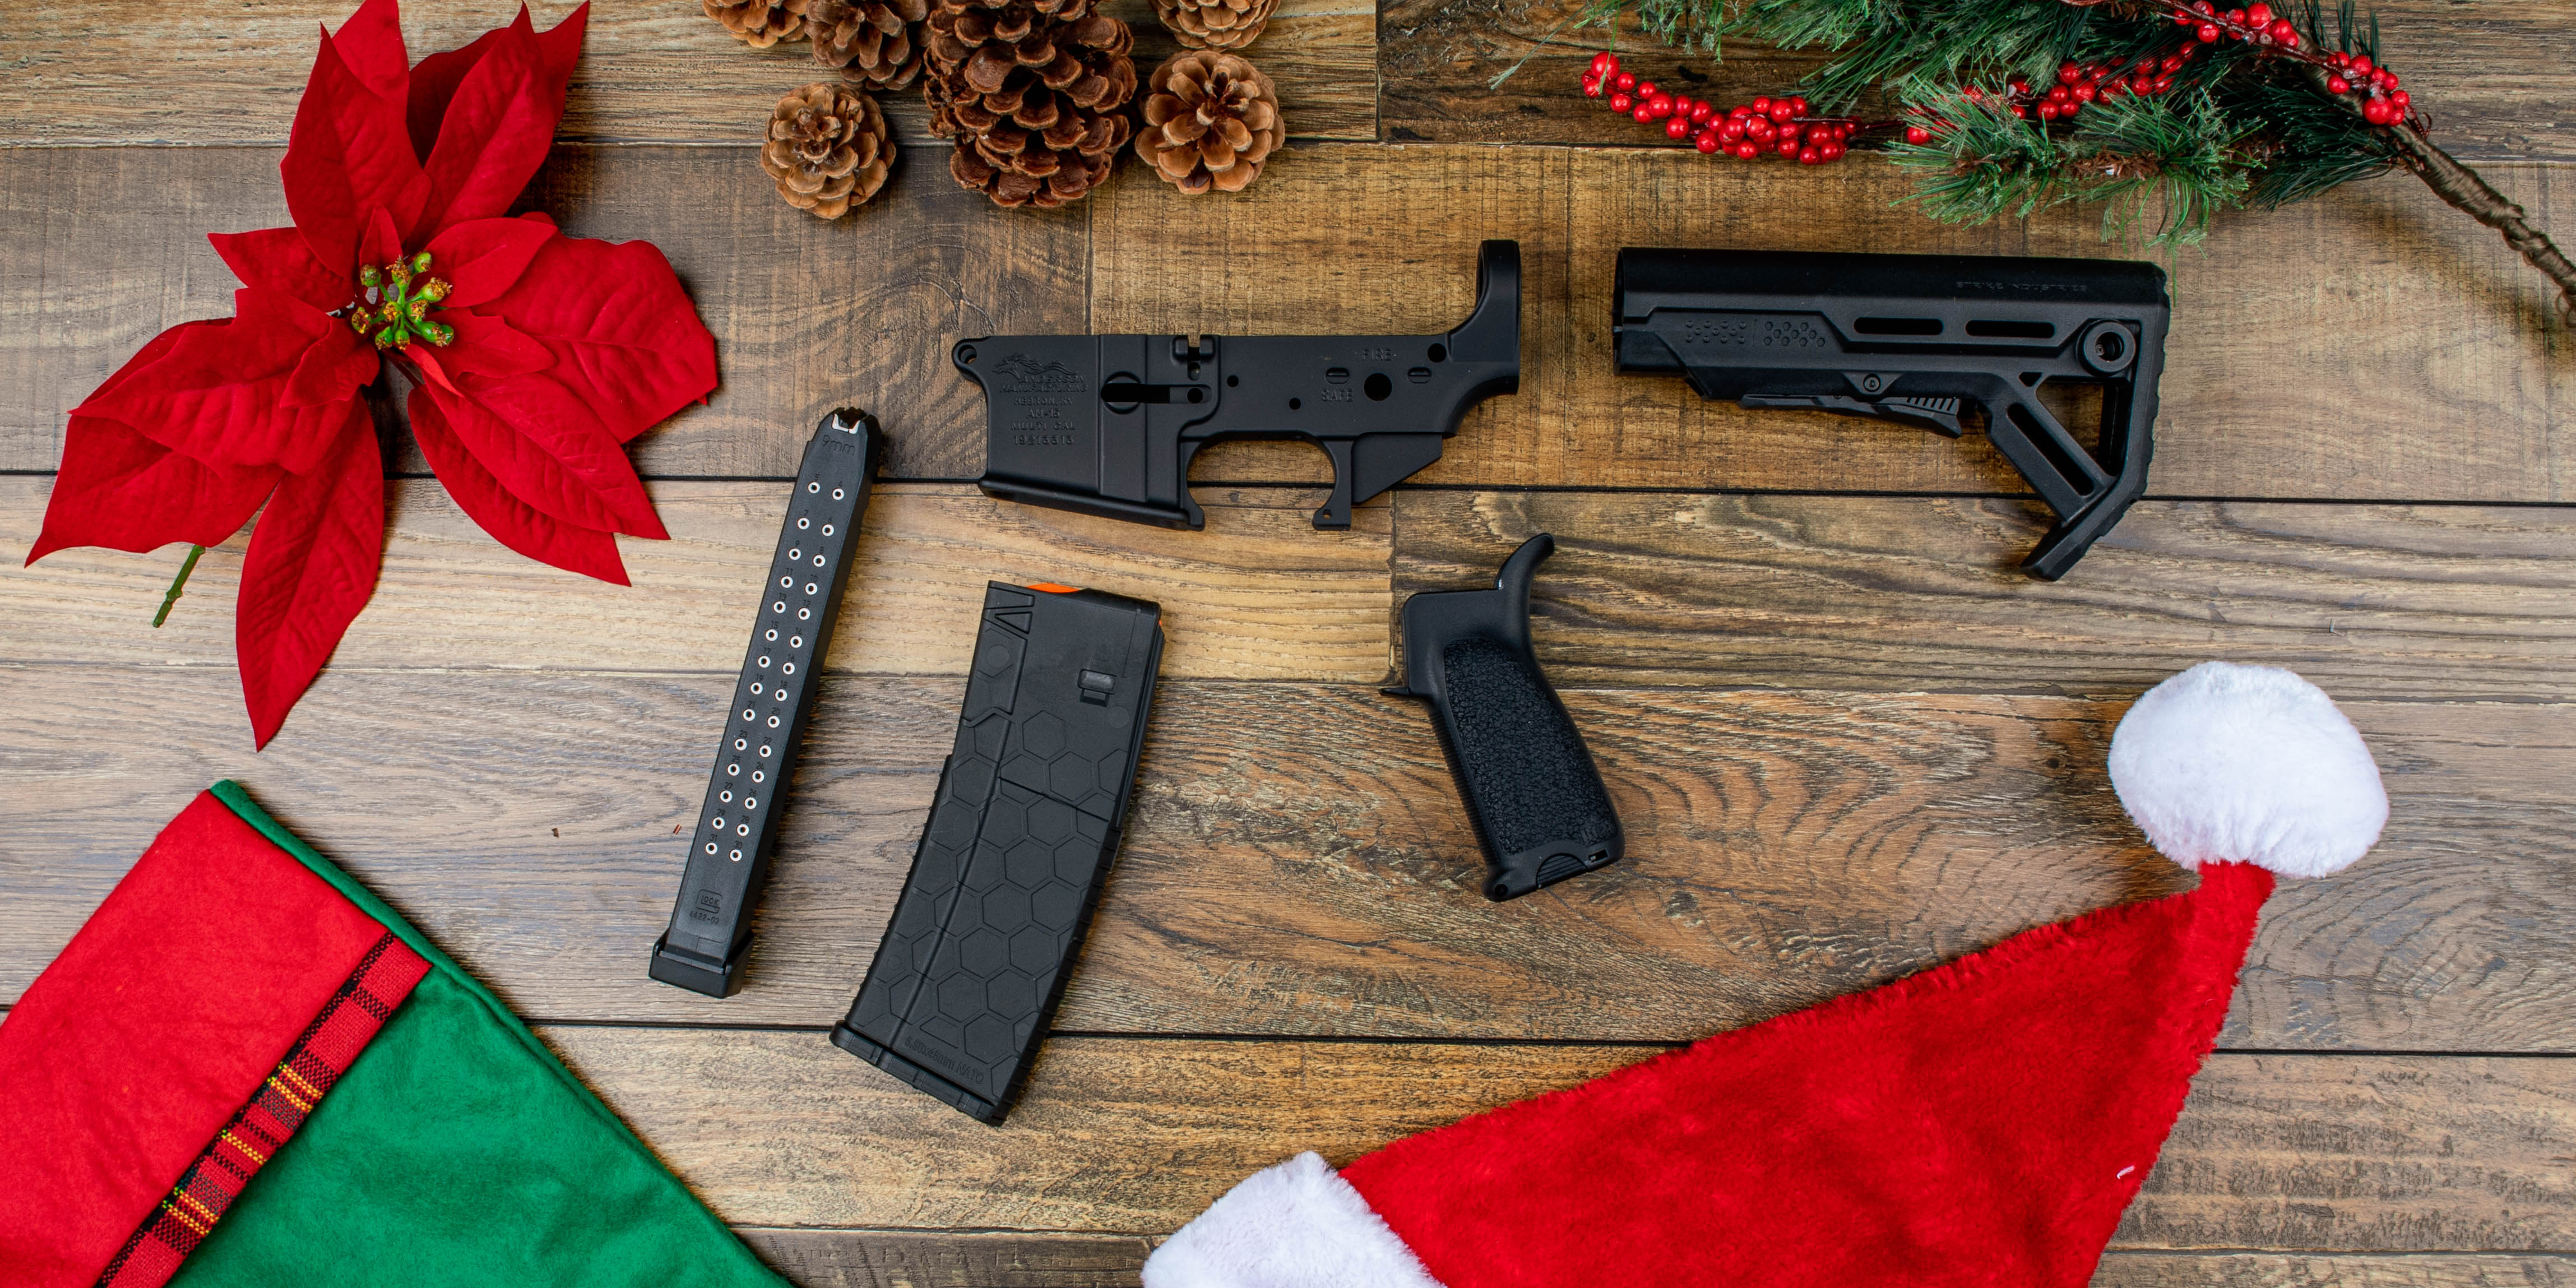 Primary Arms $50 gifts including Hexmag, BCM, Strike Industries, and Anderson Mfg.